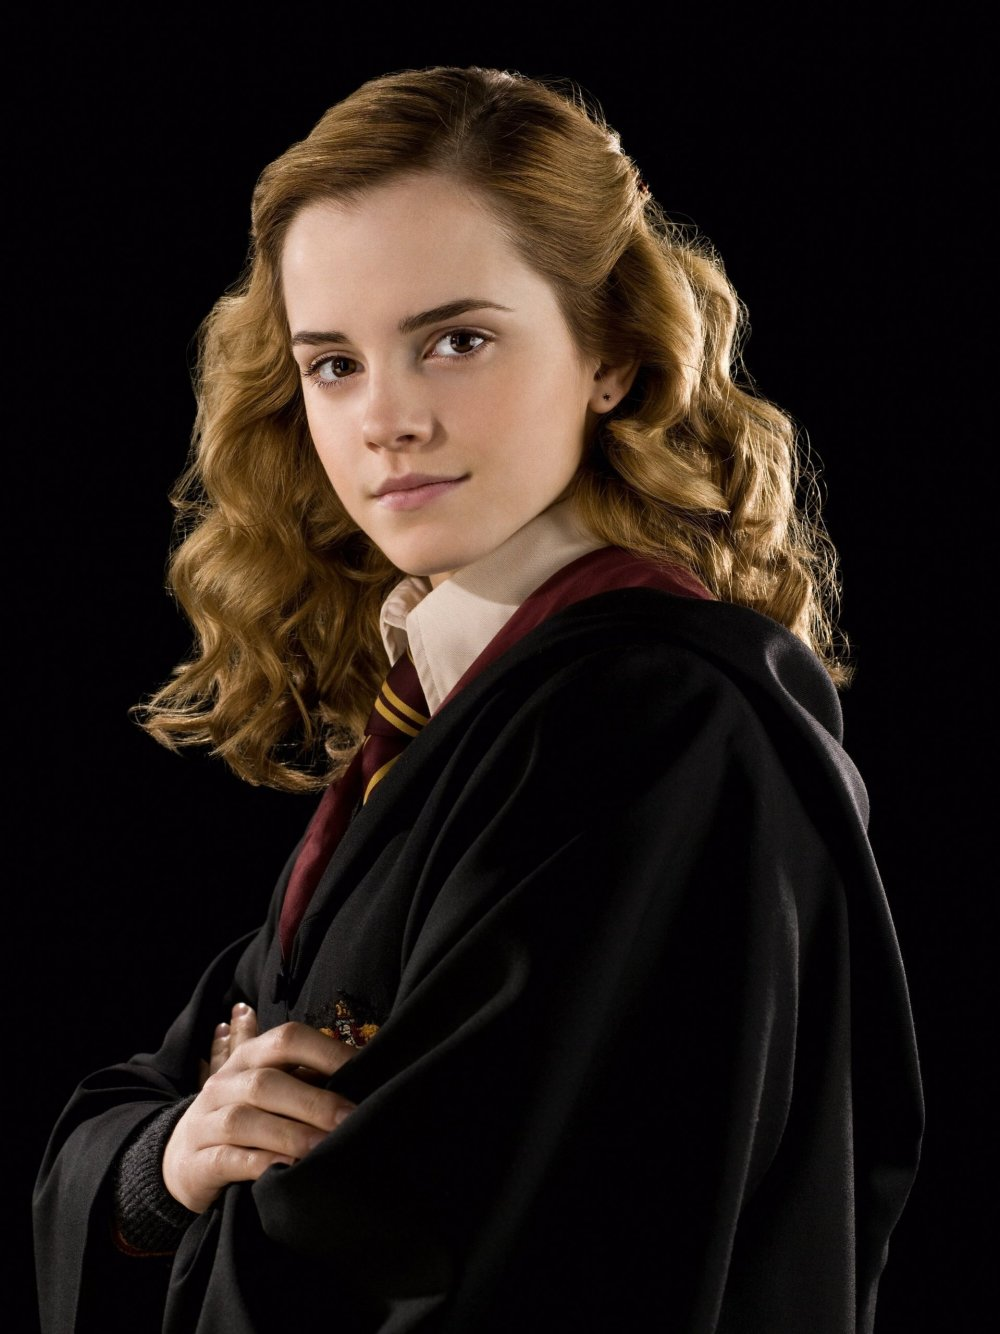 Inspiring Women in Pop Culture | Hermione